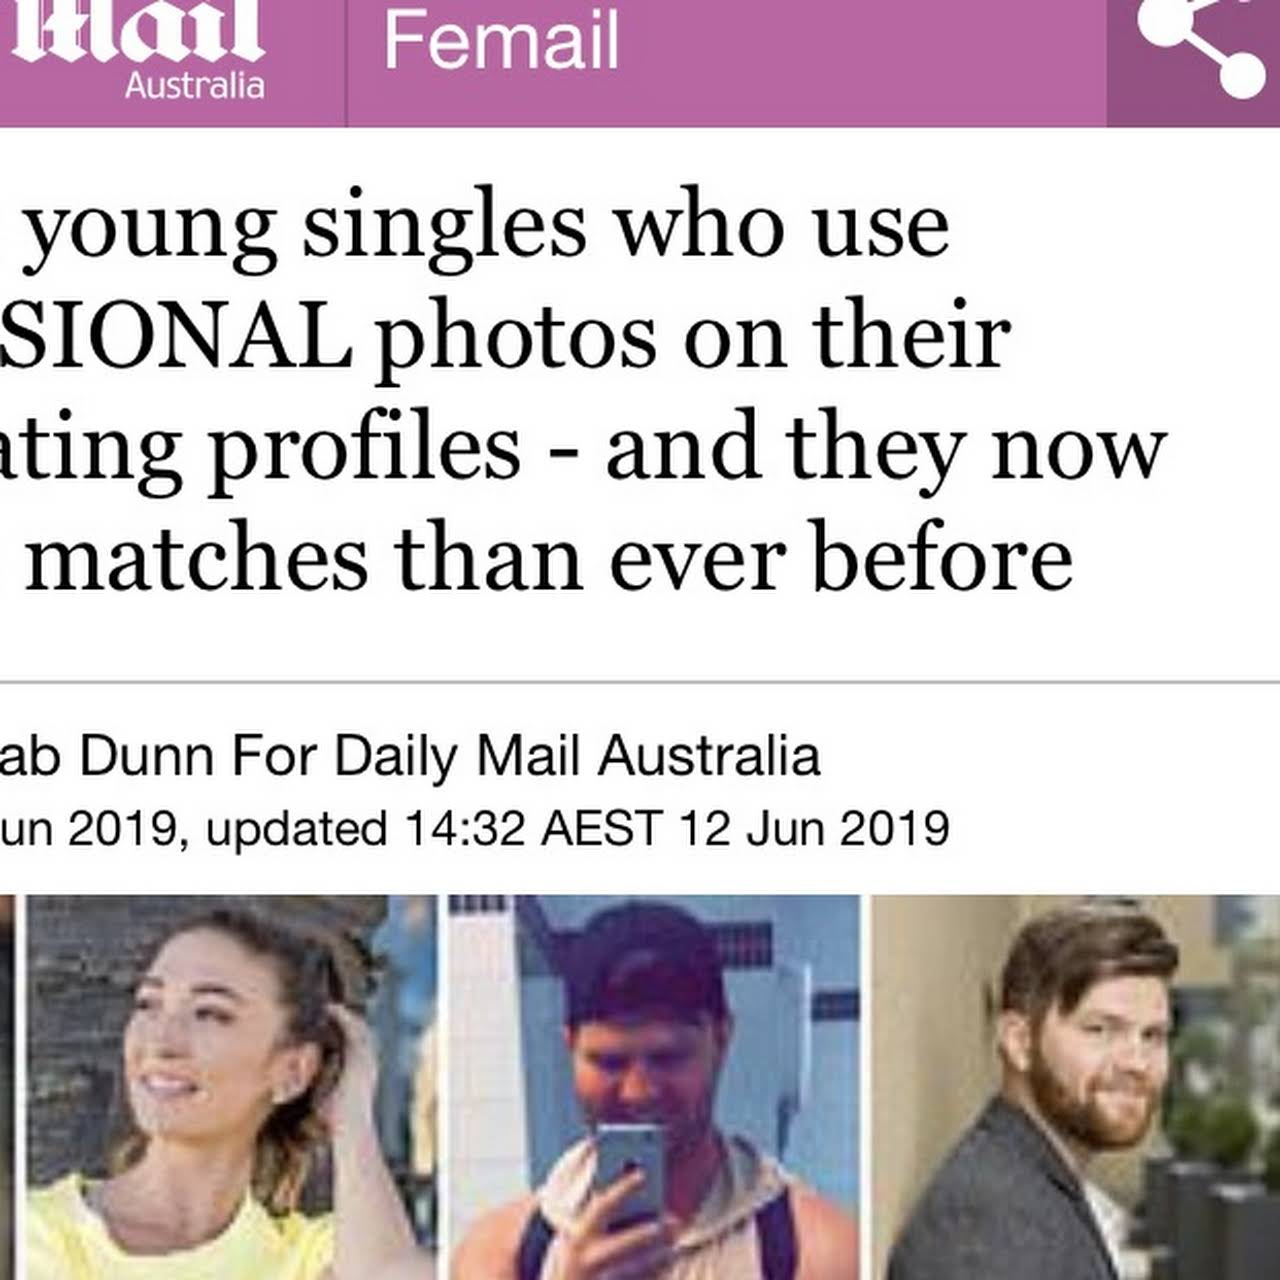 Where Can I Get Laid Tonight in Australia